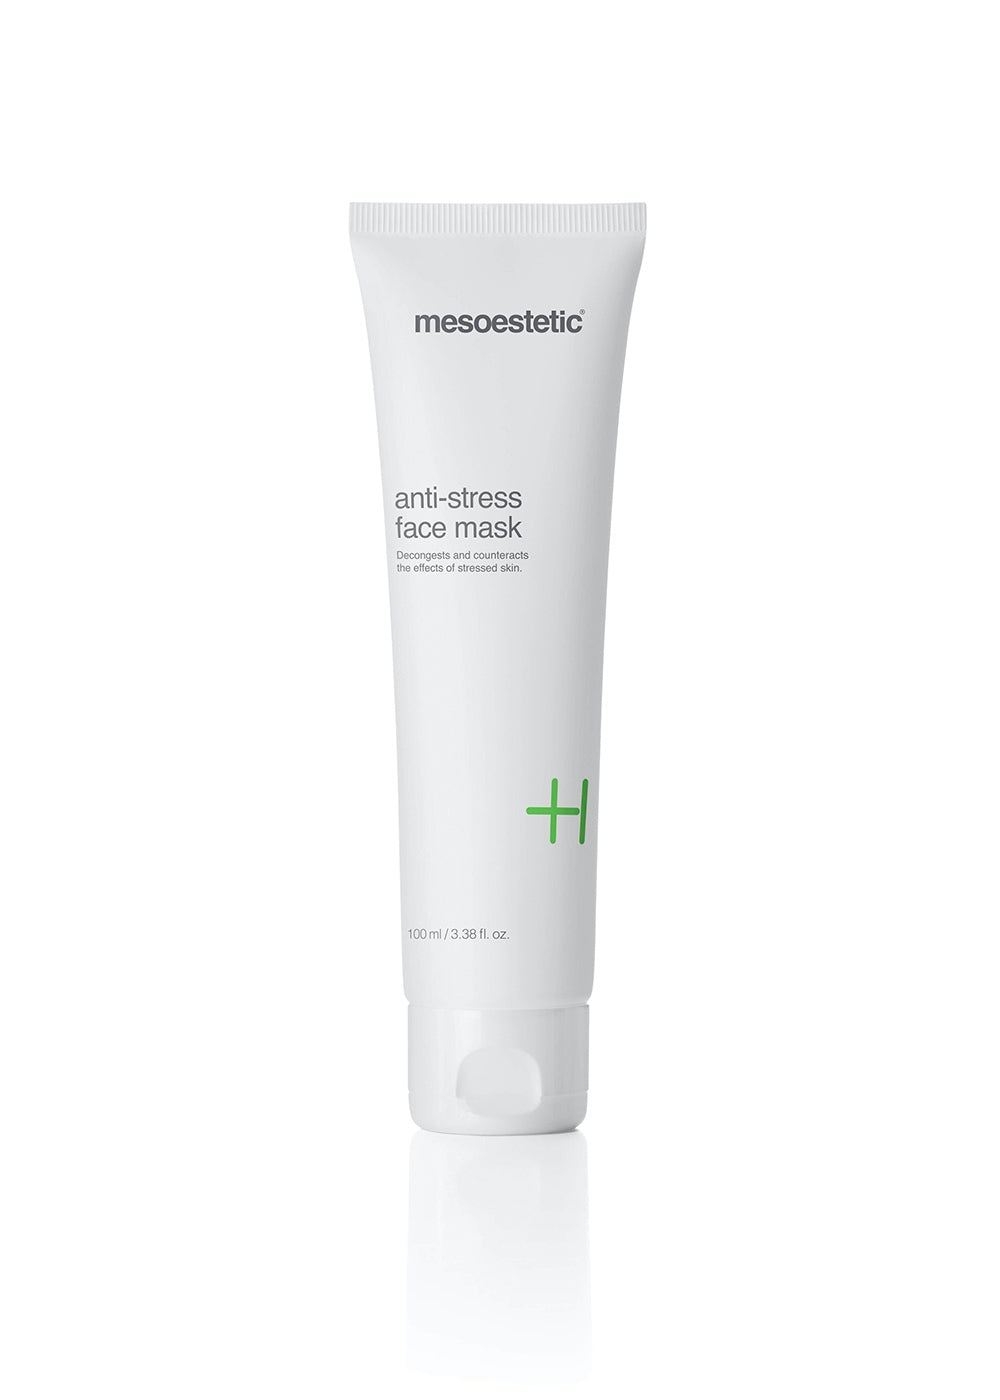 Mesoestetic Anti-Stress Face Mask